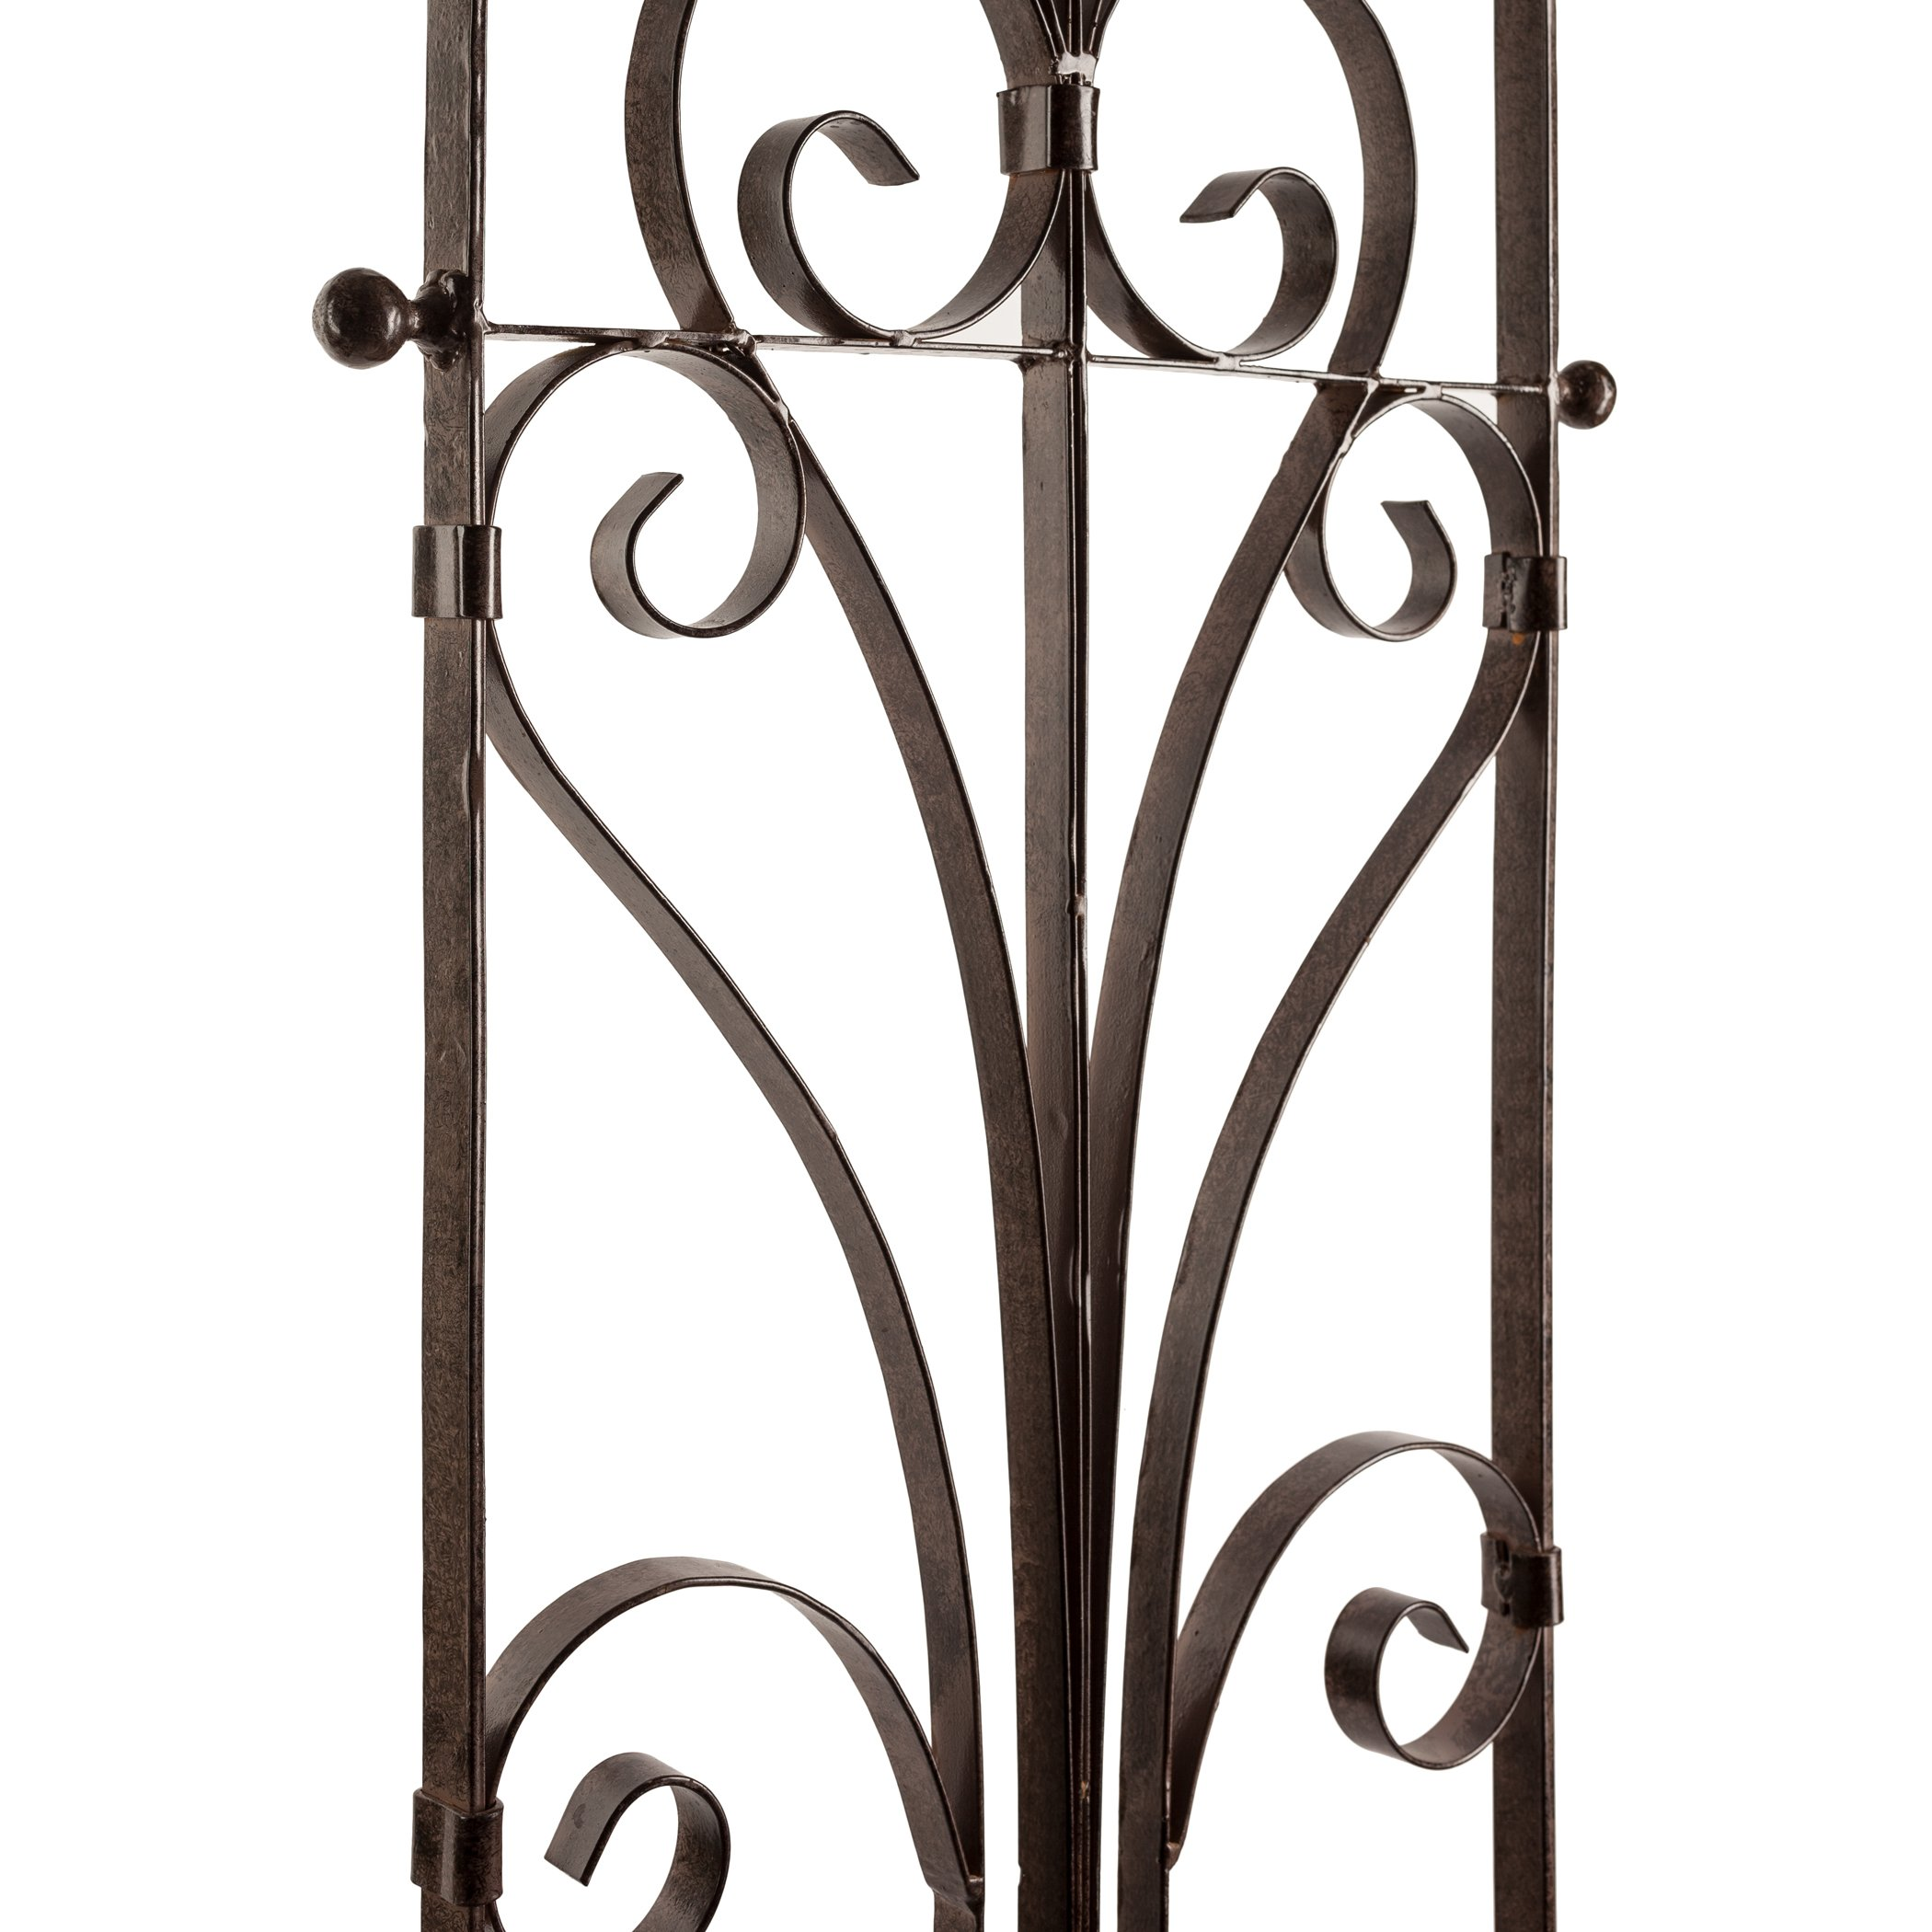 H Potter Italian Iron Garden Trellis-Durable, Elegant, Metal Trellis Lawn Decor with Powder Coat Finish- Hand Cut, Heavy Scroll Iron, Easy to Stake, No Assembly Needed, All Weather Yard Art (Large)